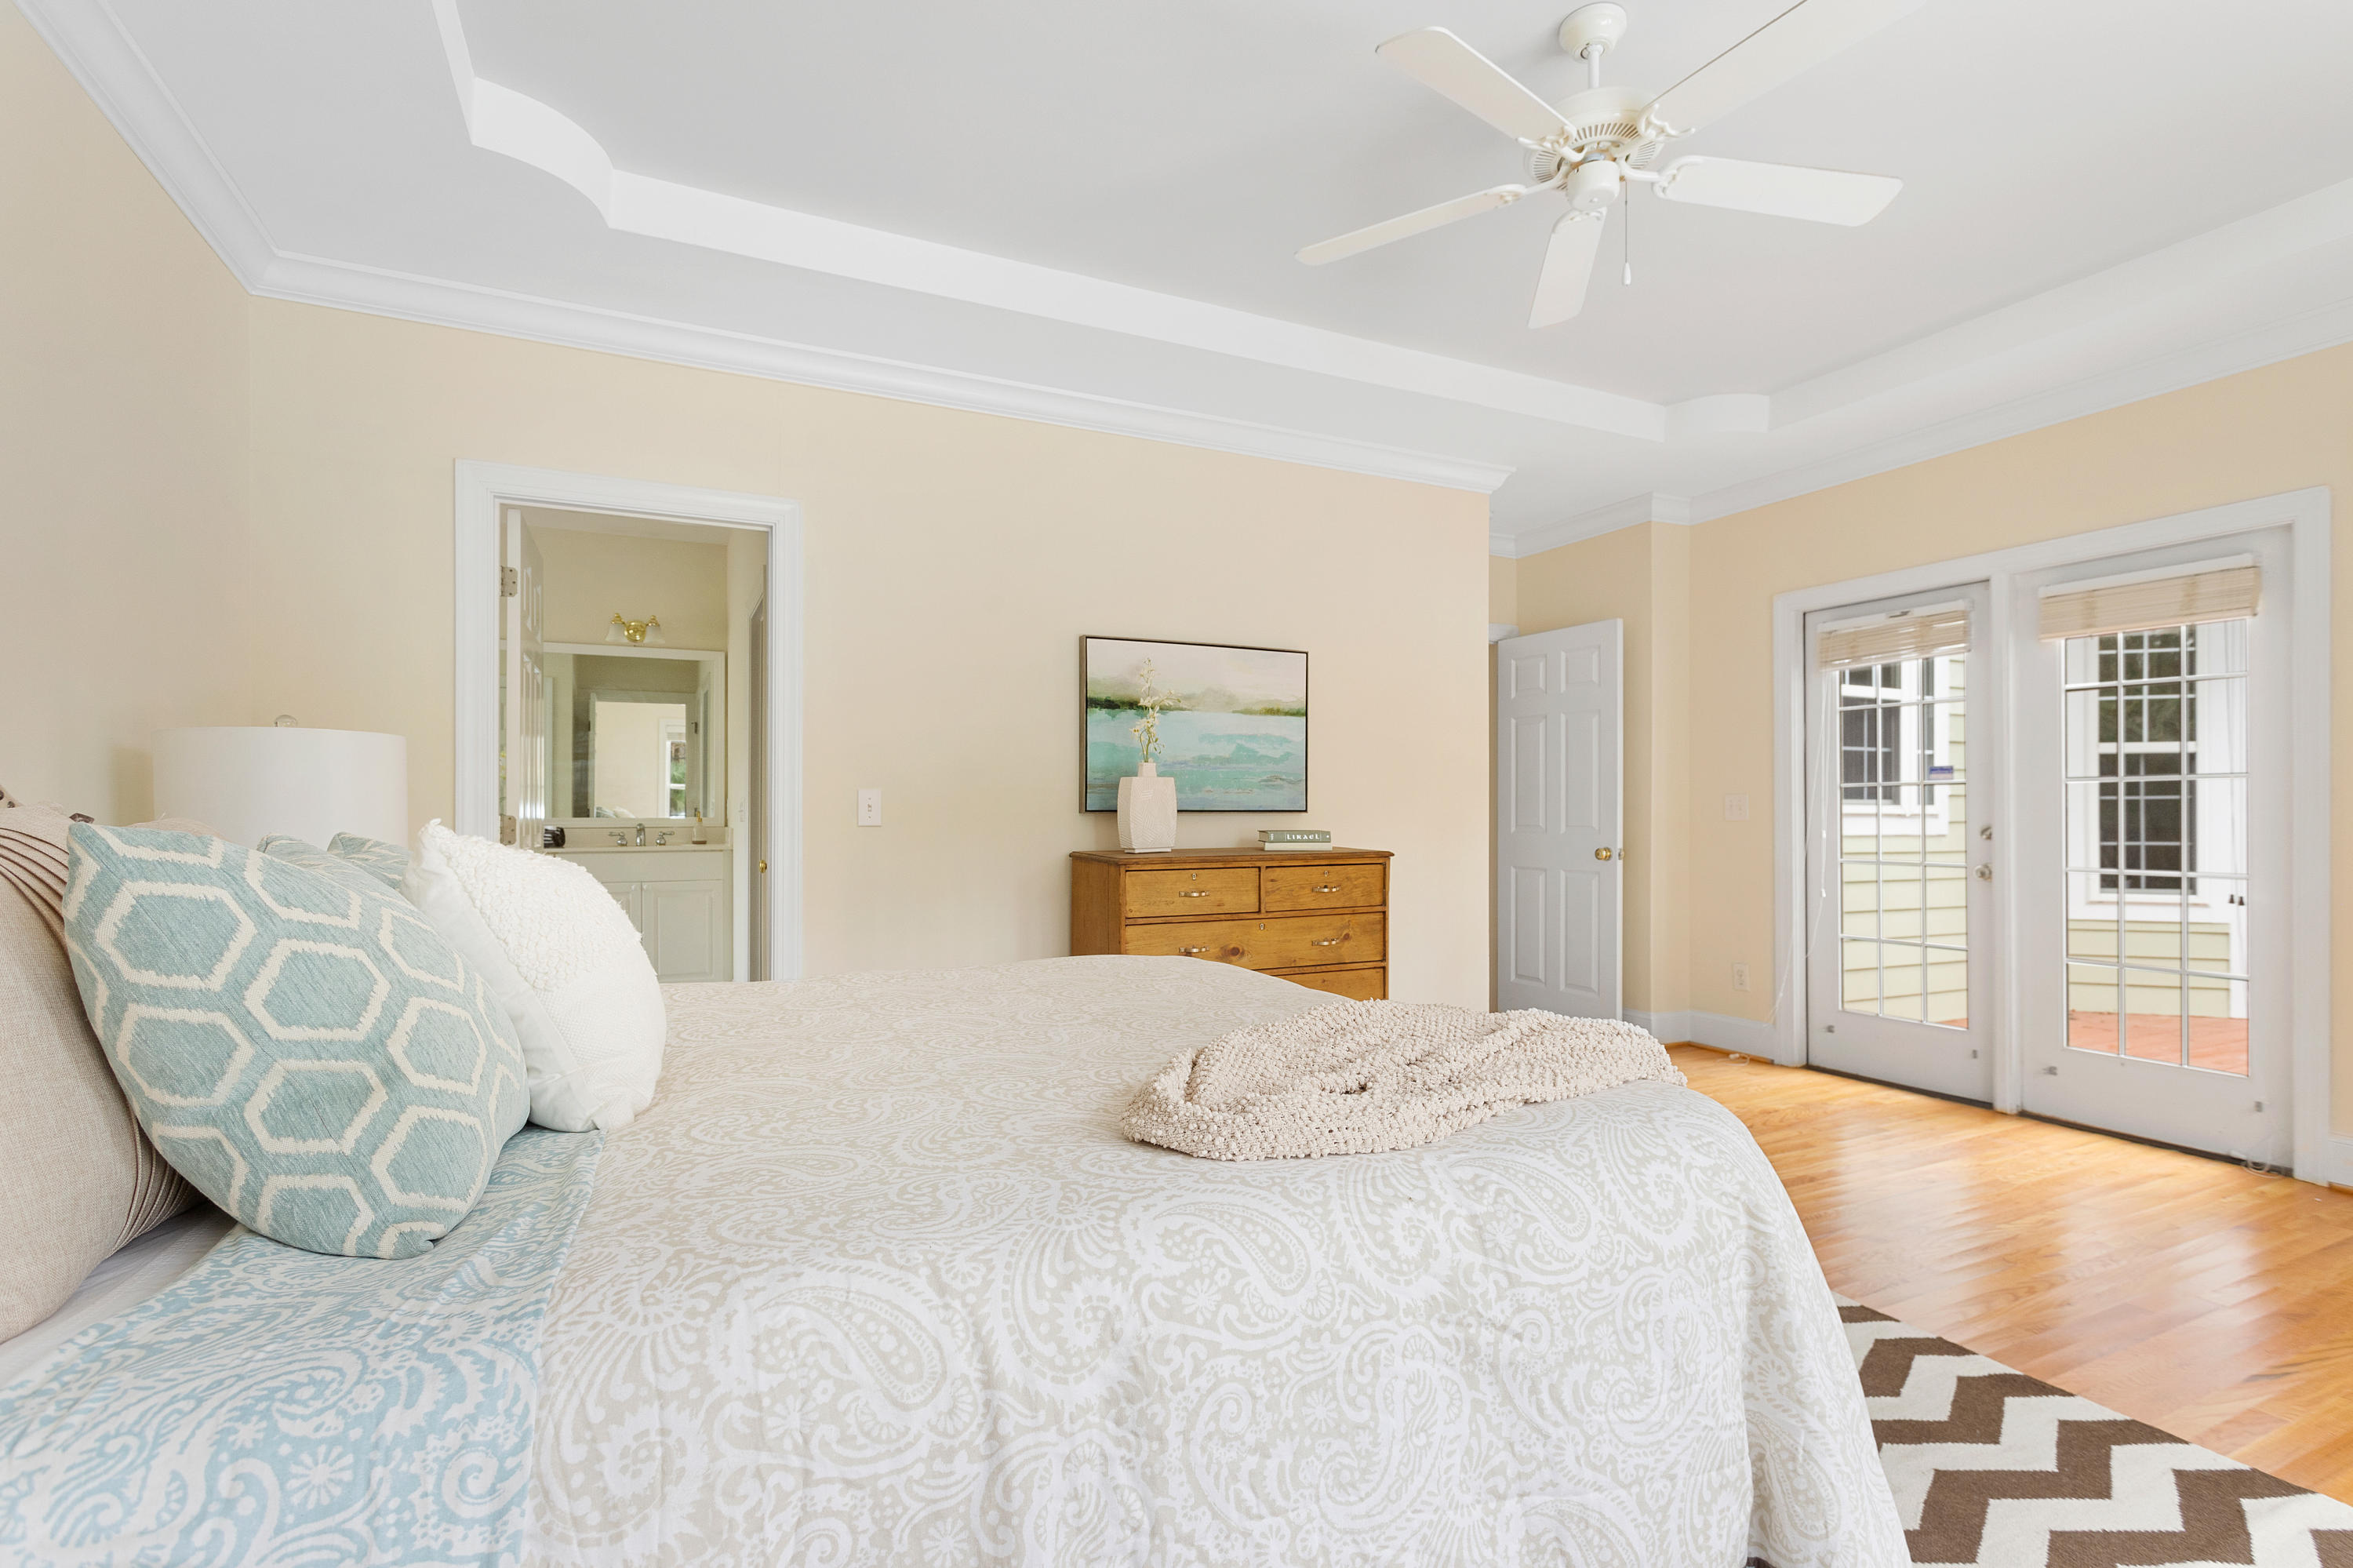 Dunes West Homes For Sale - 1842 Shell Ring, Mount Pleasant, SC - 30